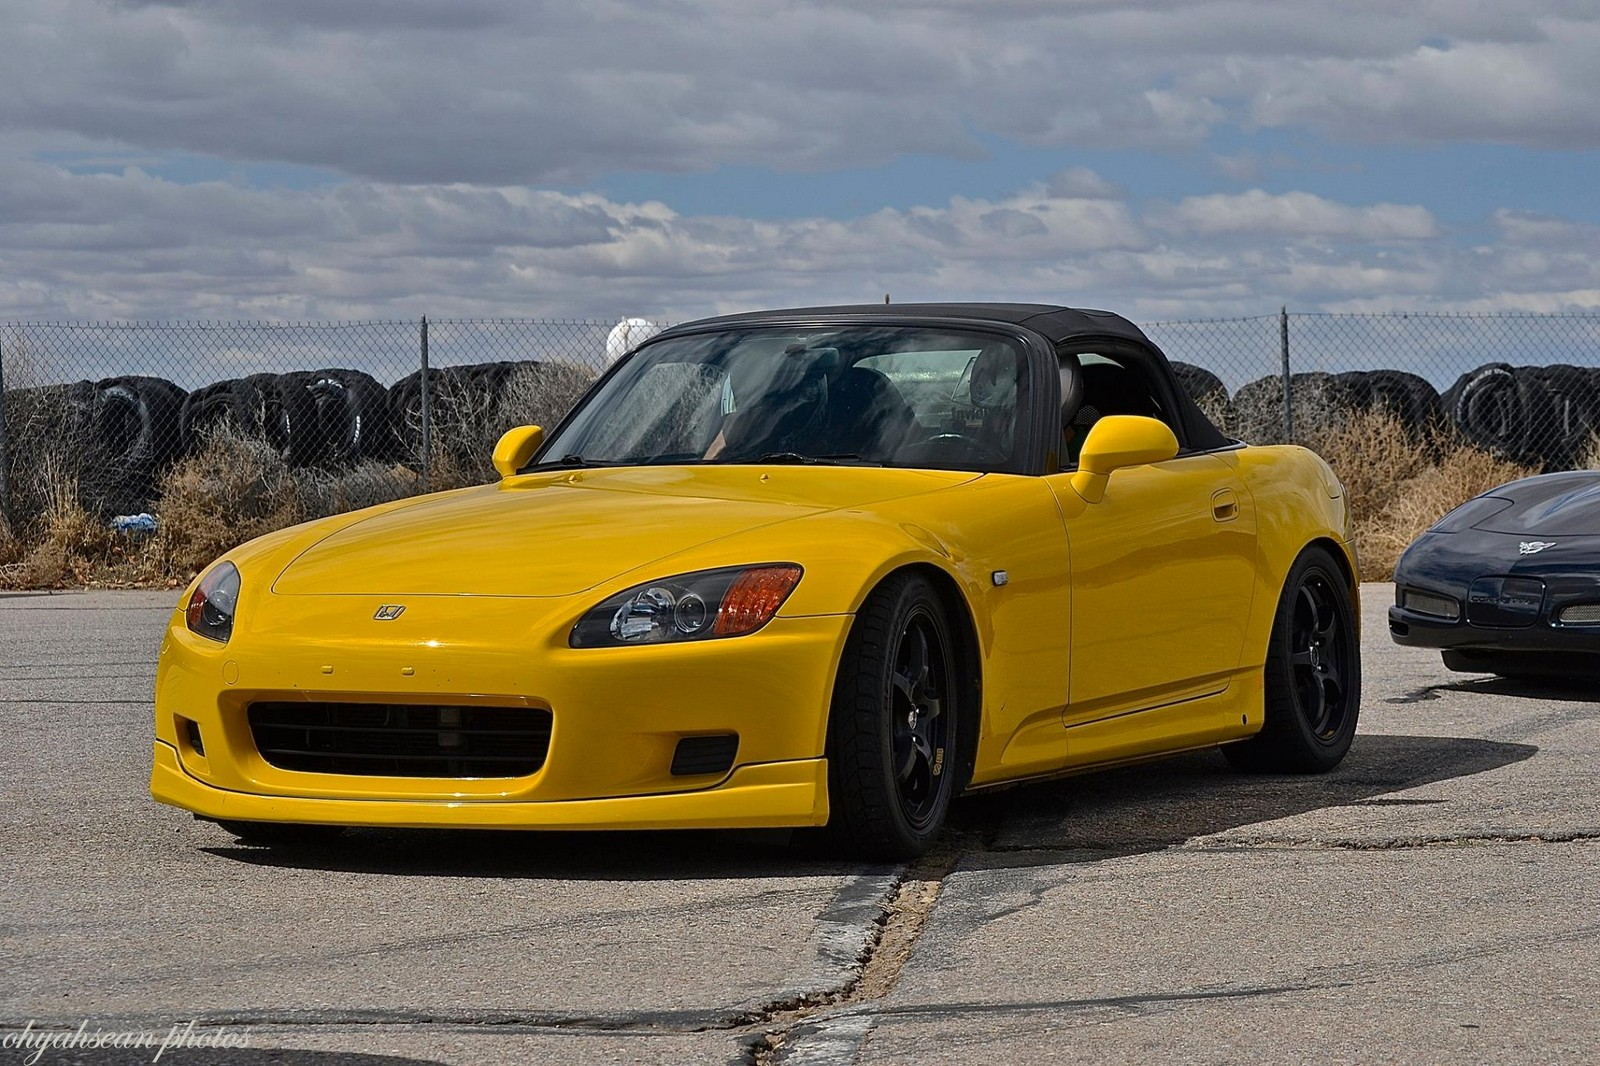 ... HERE to view any videos, mods or upgrades to this Honda S2000 Nitrous